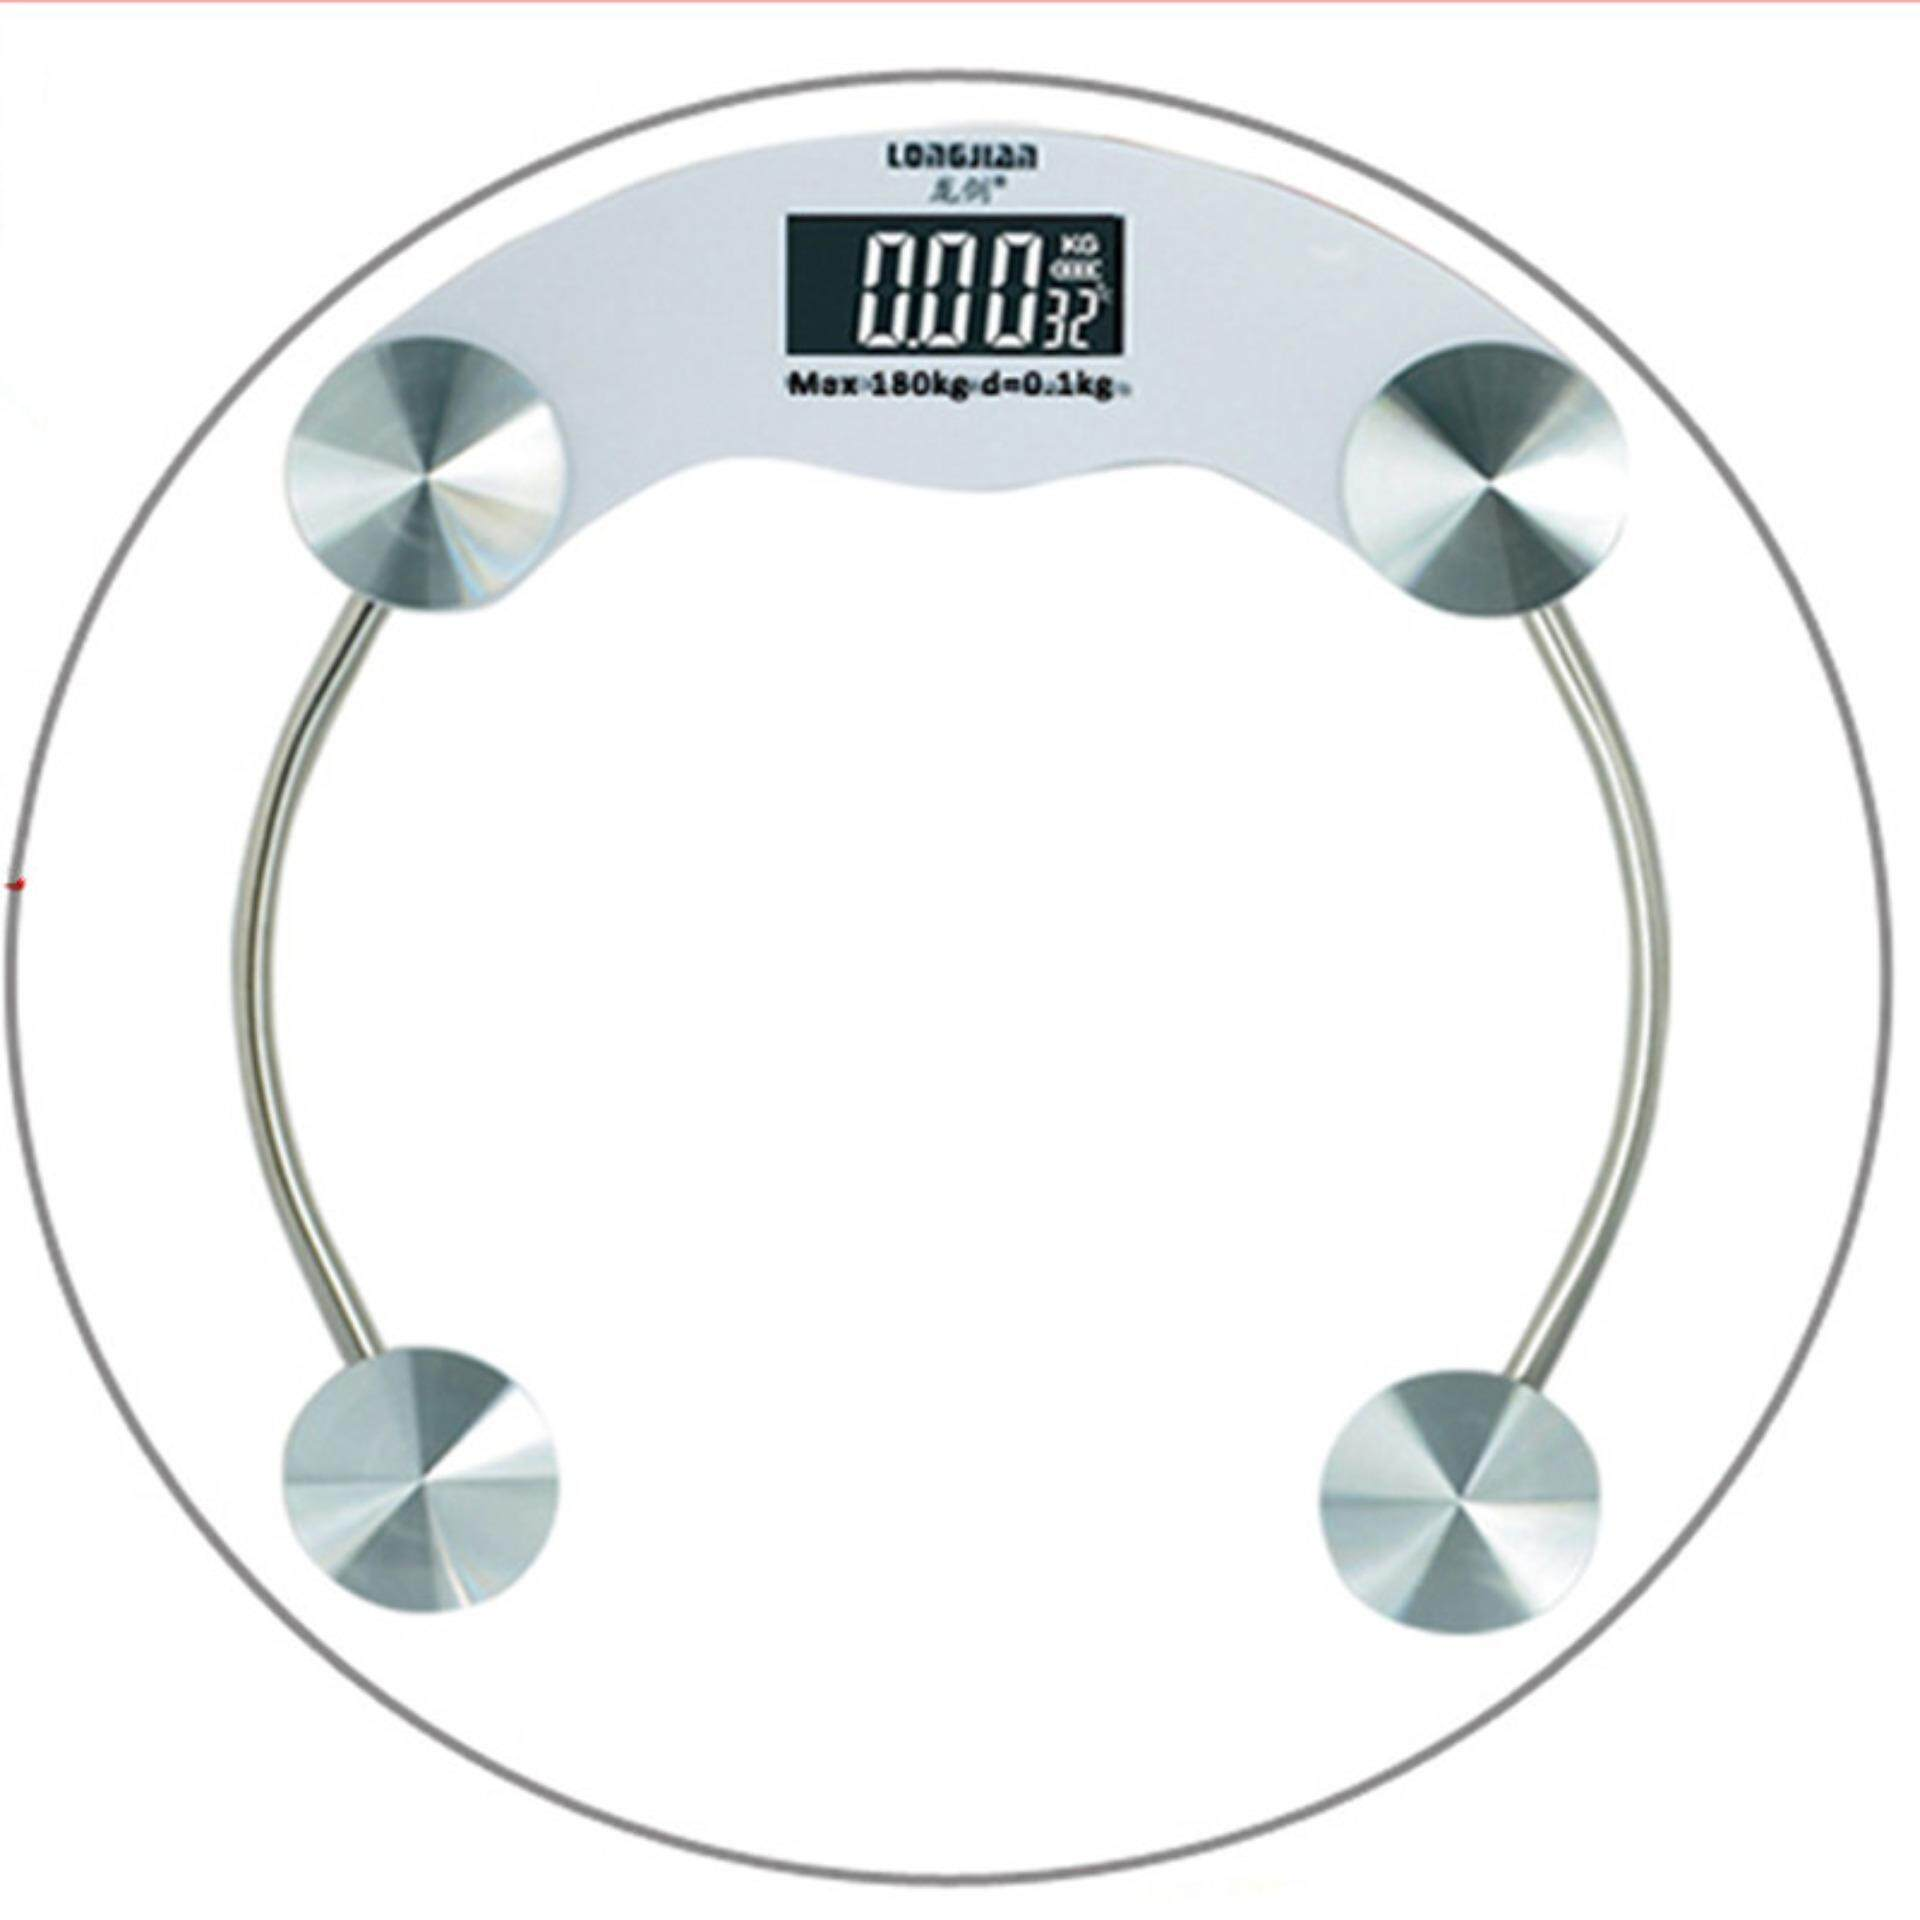 180kg Tempered Glass Electronic Body Weighting Scale Scale Scales Balance Bathroom Weighing Quality Transparency